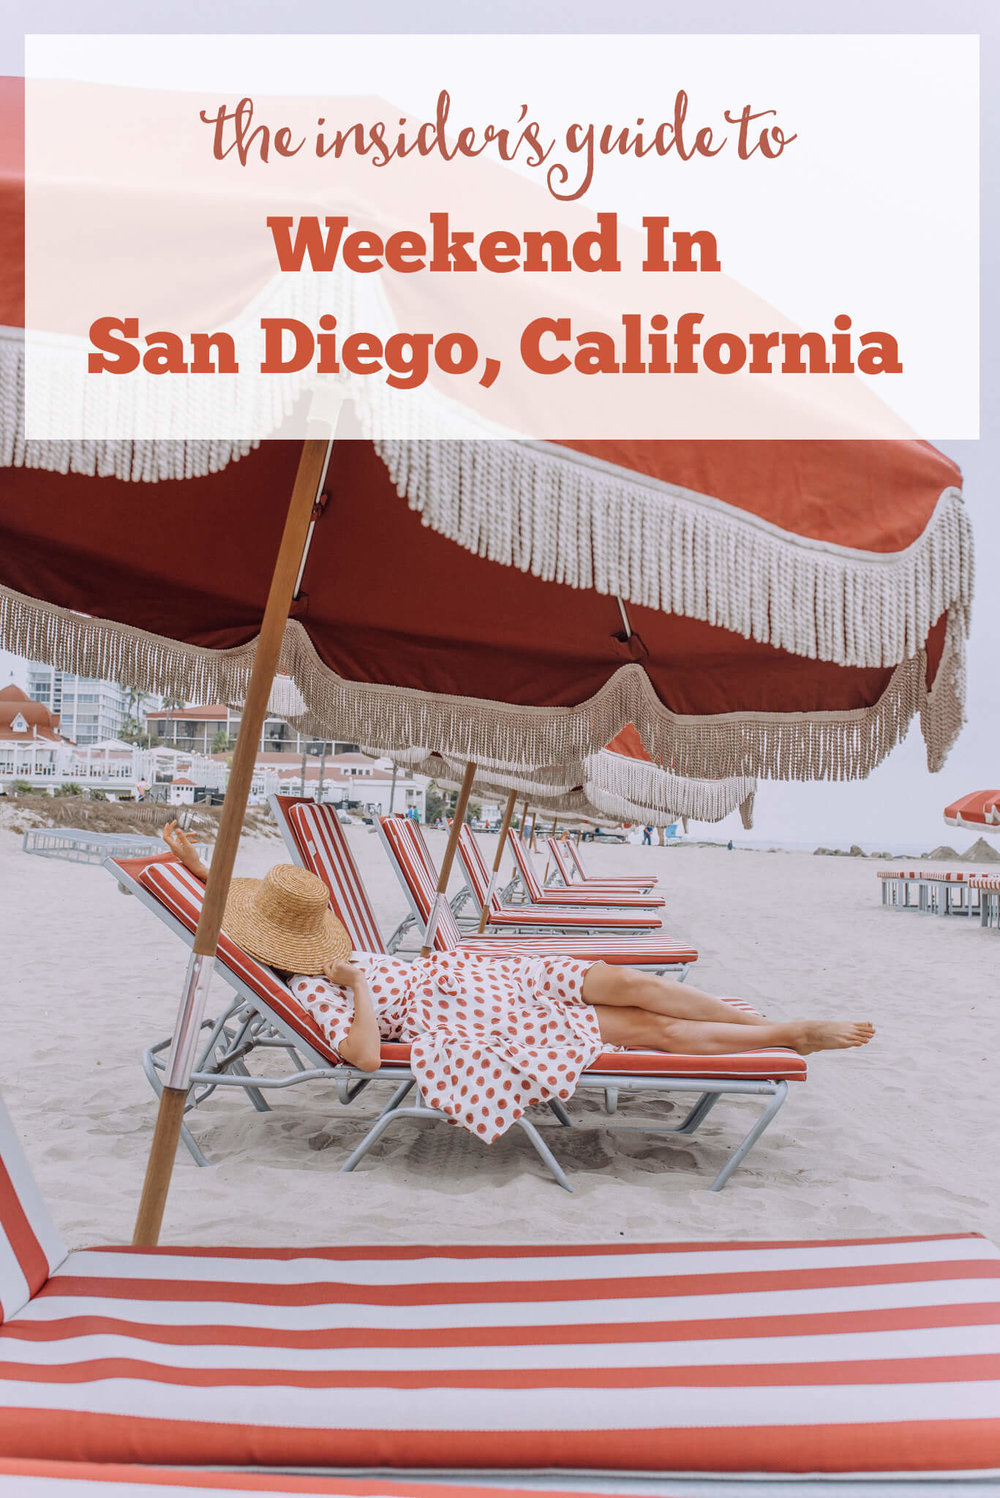 SanDiego-Priceline-Coupon-4.jpg